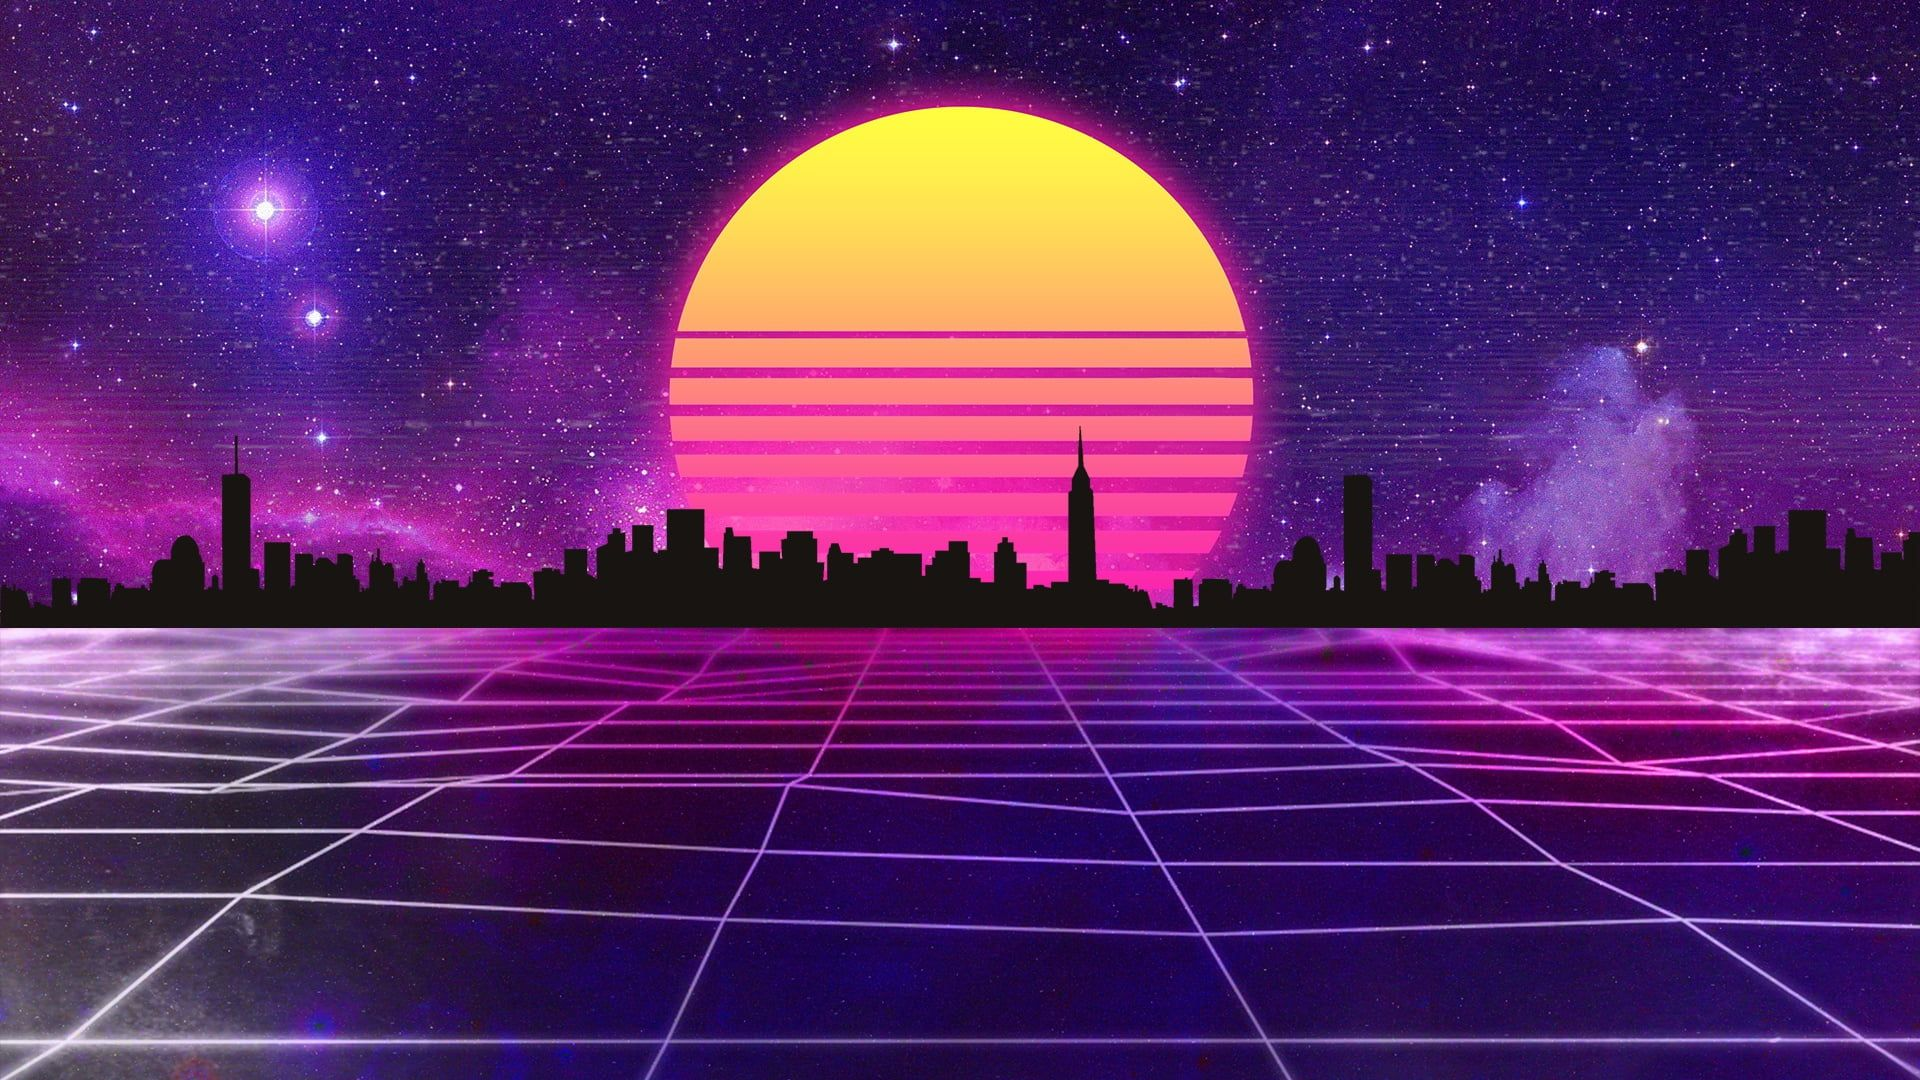 The Sun Music The City Stars Space Background 80s Neon 80 S Synth Retrowave Synthwave New Retro Wave Futuresynt Retro Waves Synthwave Neon Wallpaper